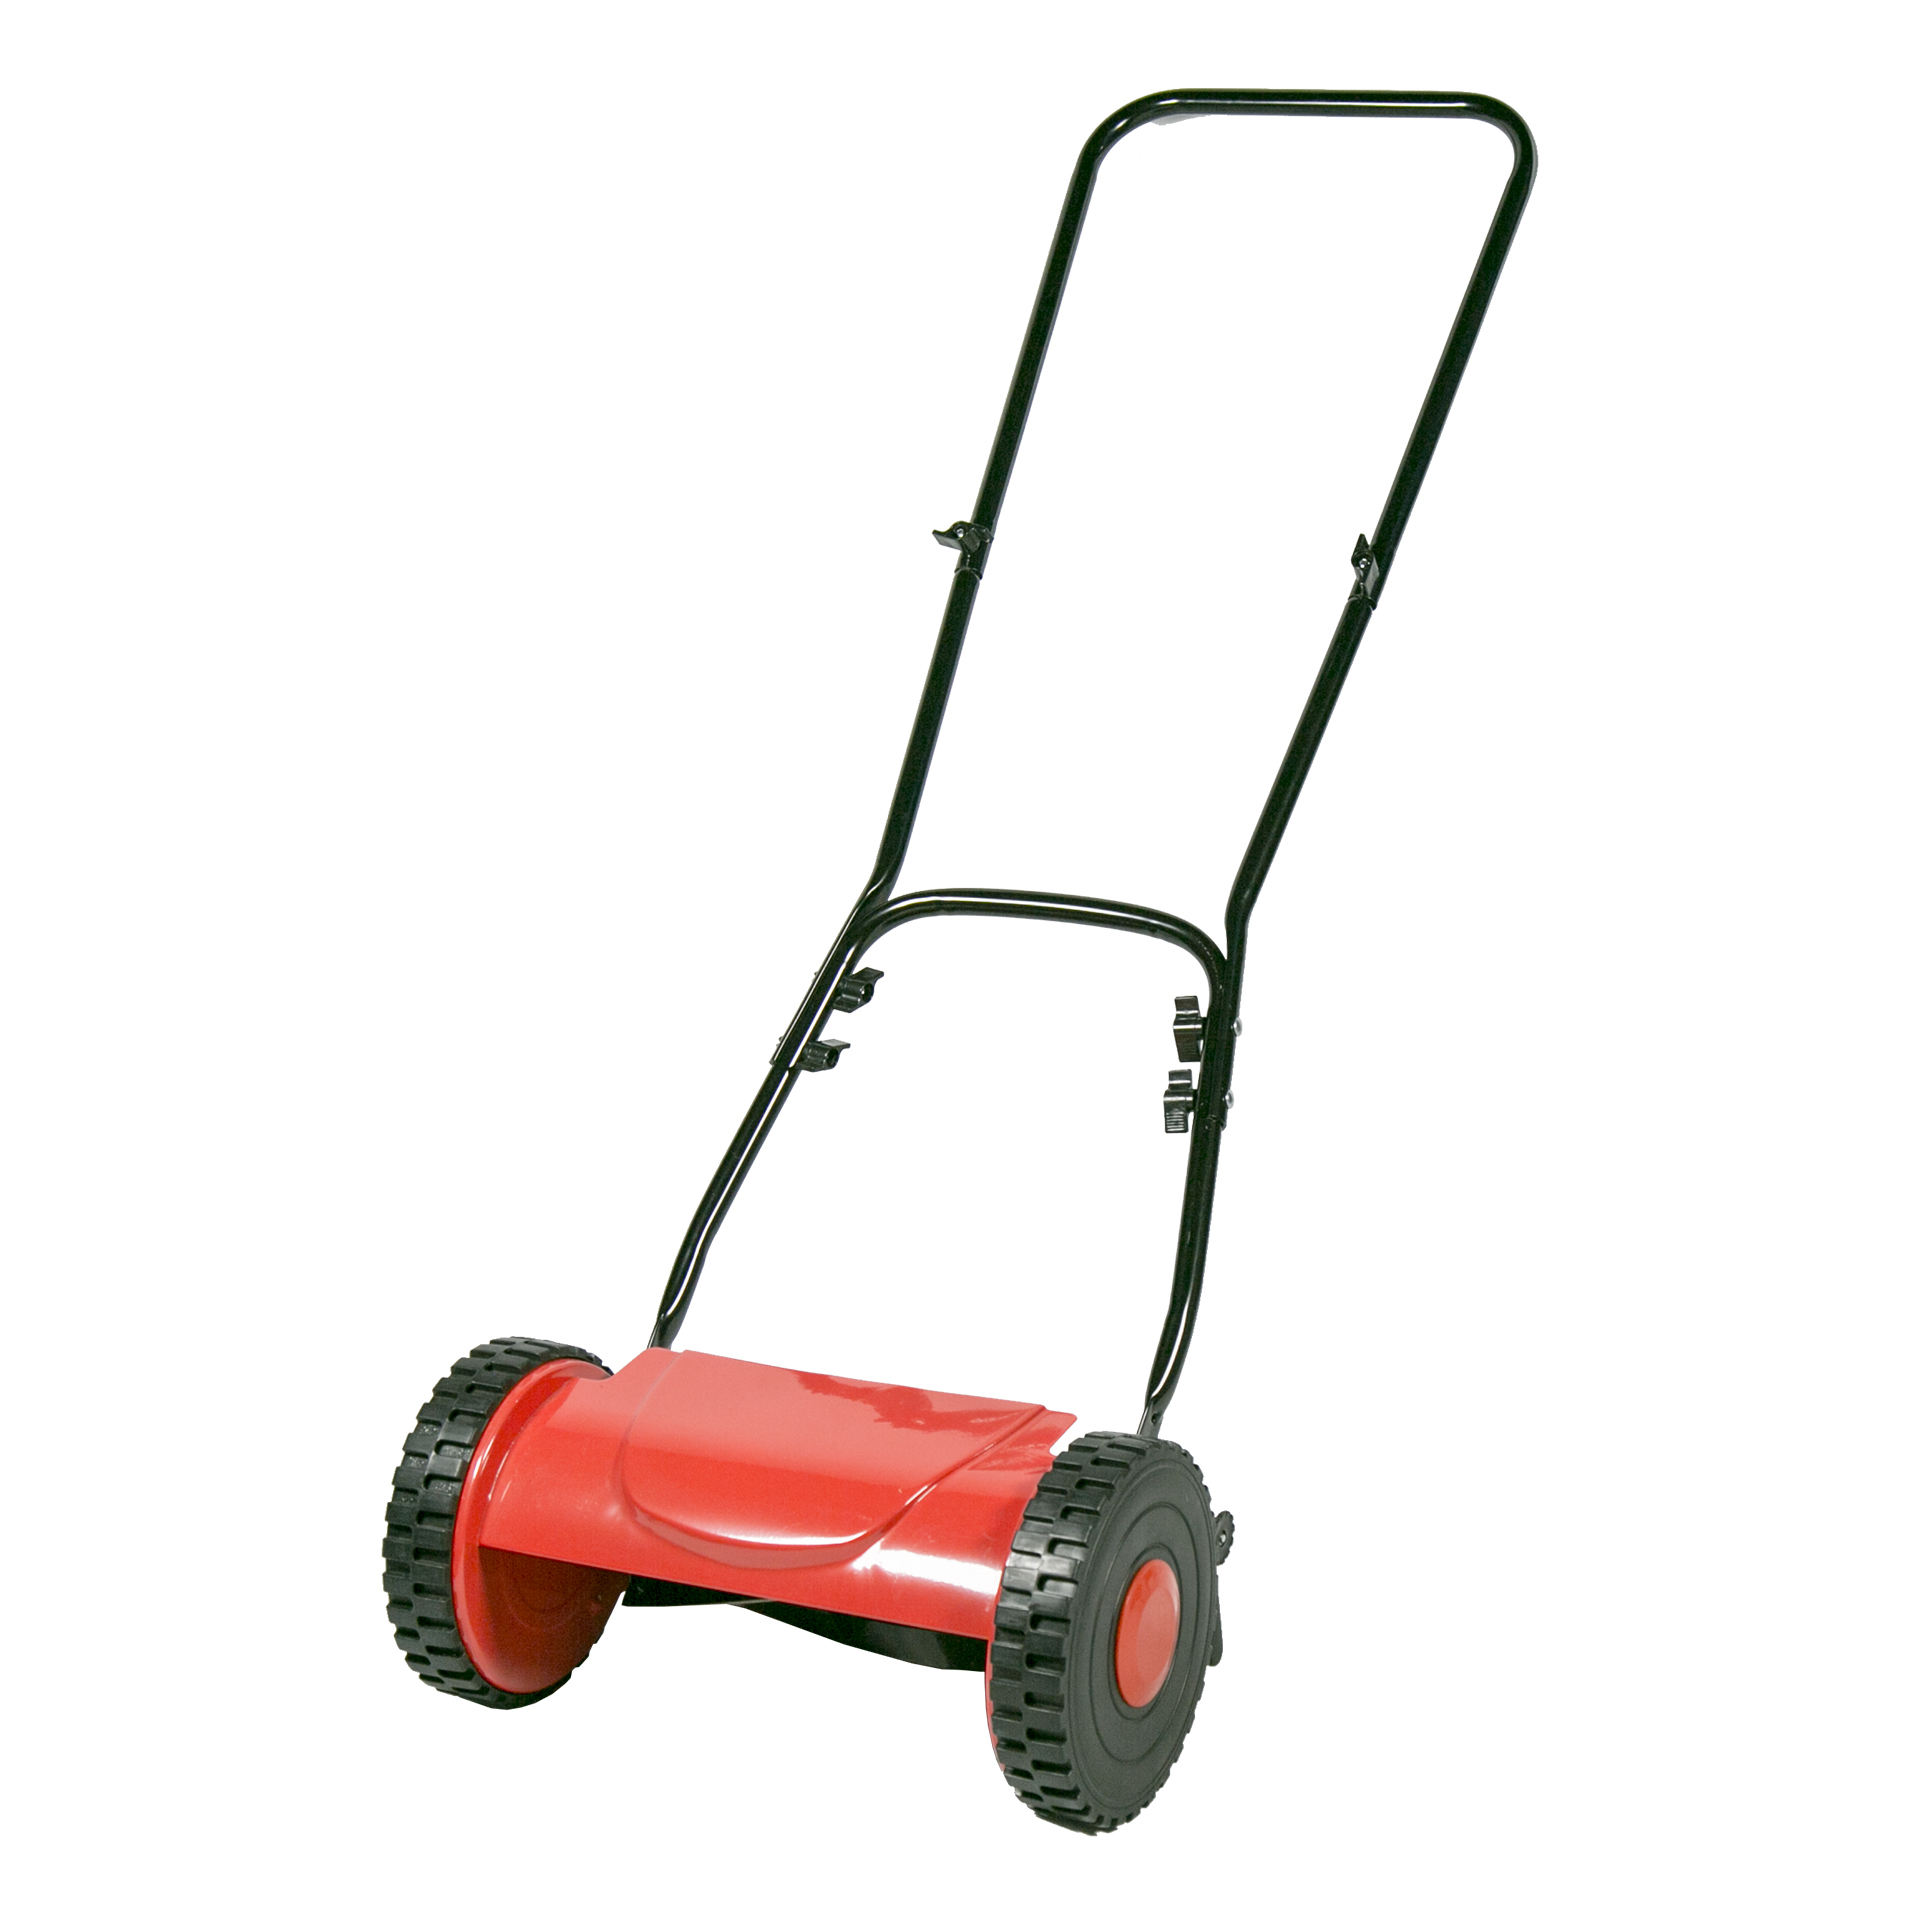 Fine cutting hand push finish mower